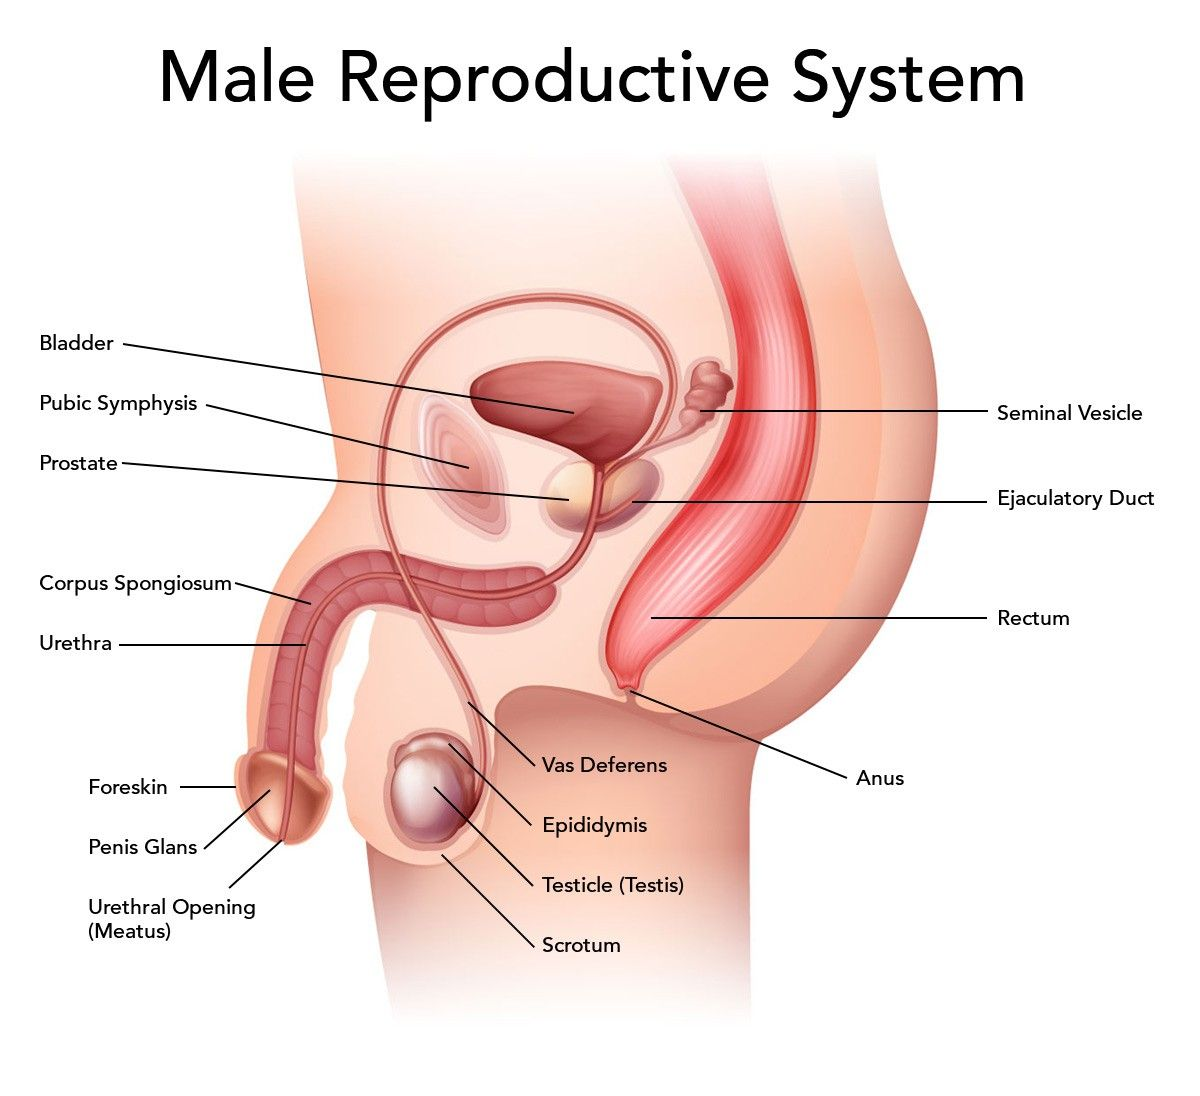 hight resolution of anatomical diagram of human body luxury female reproductive system diseases diseases in the male reproductive system female